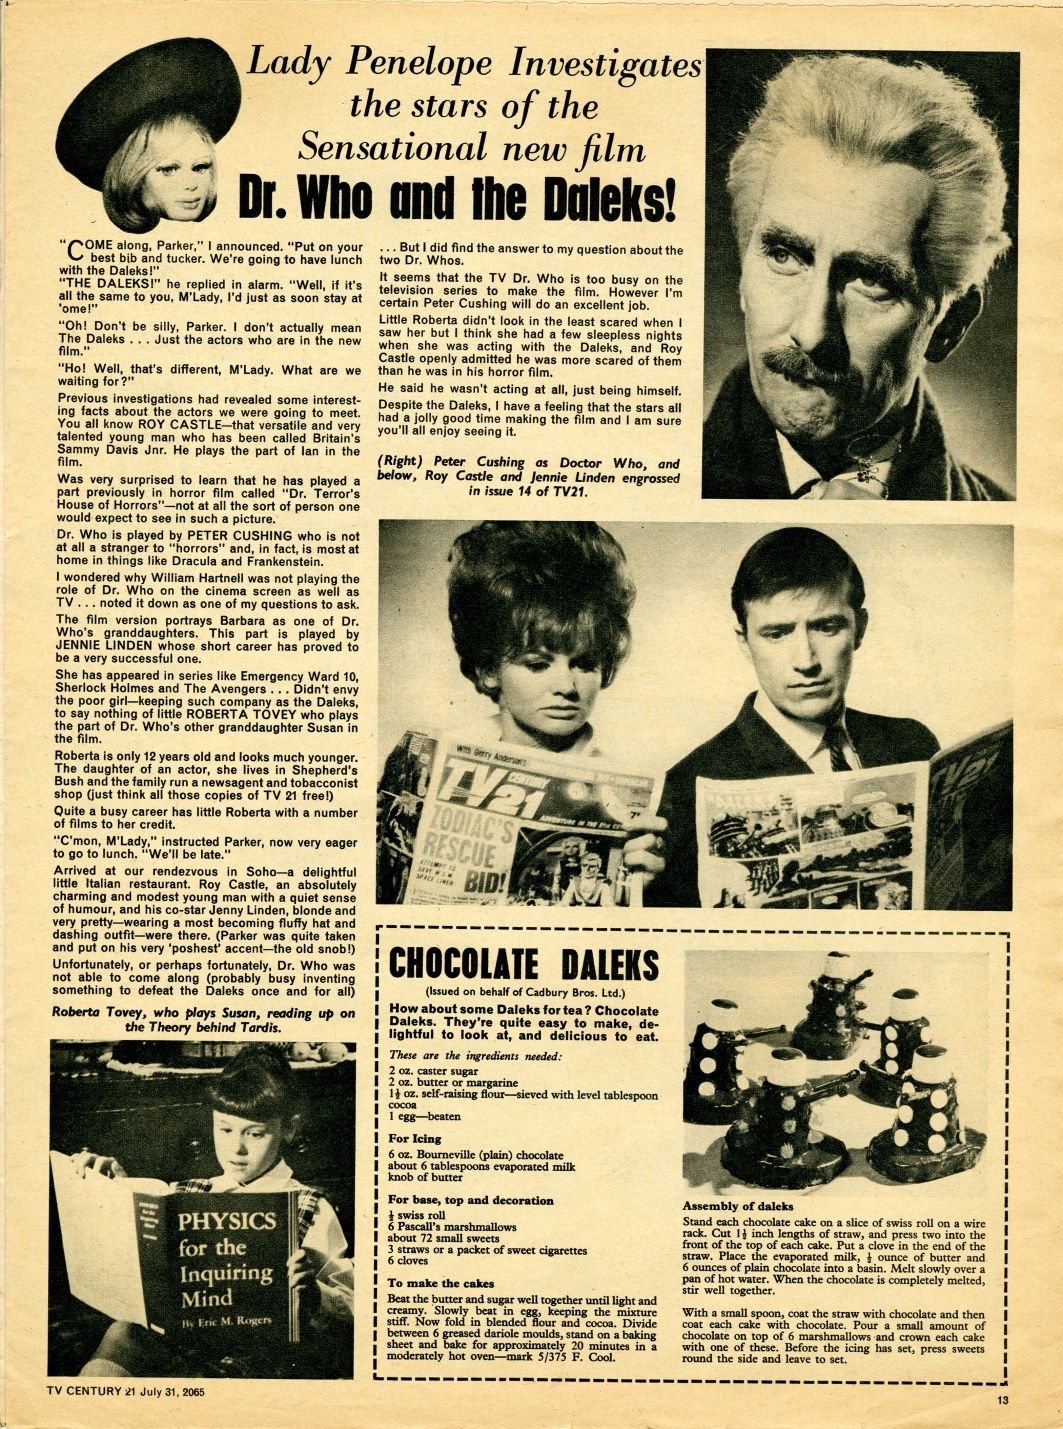 TV Century 21 no. 28, Lady Penelope Investigates the Stars of the Film, 31 July 2065 (1965)